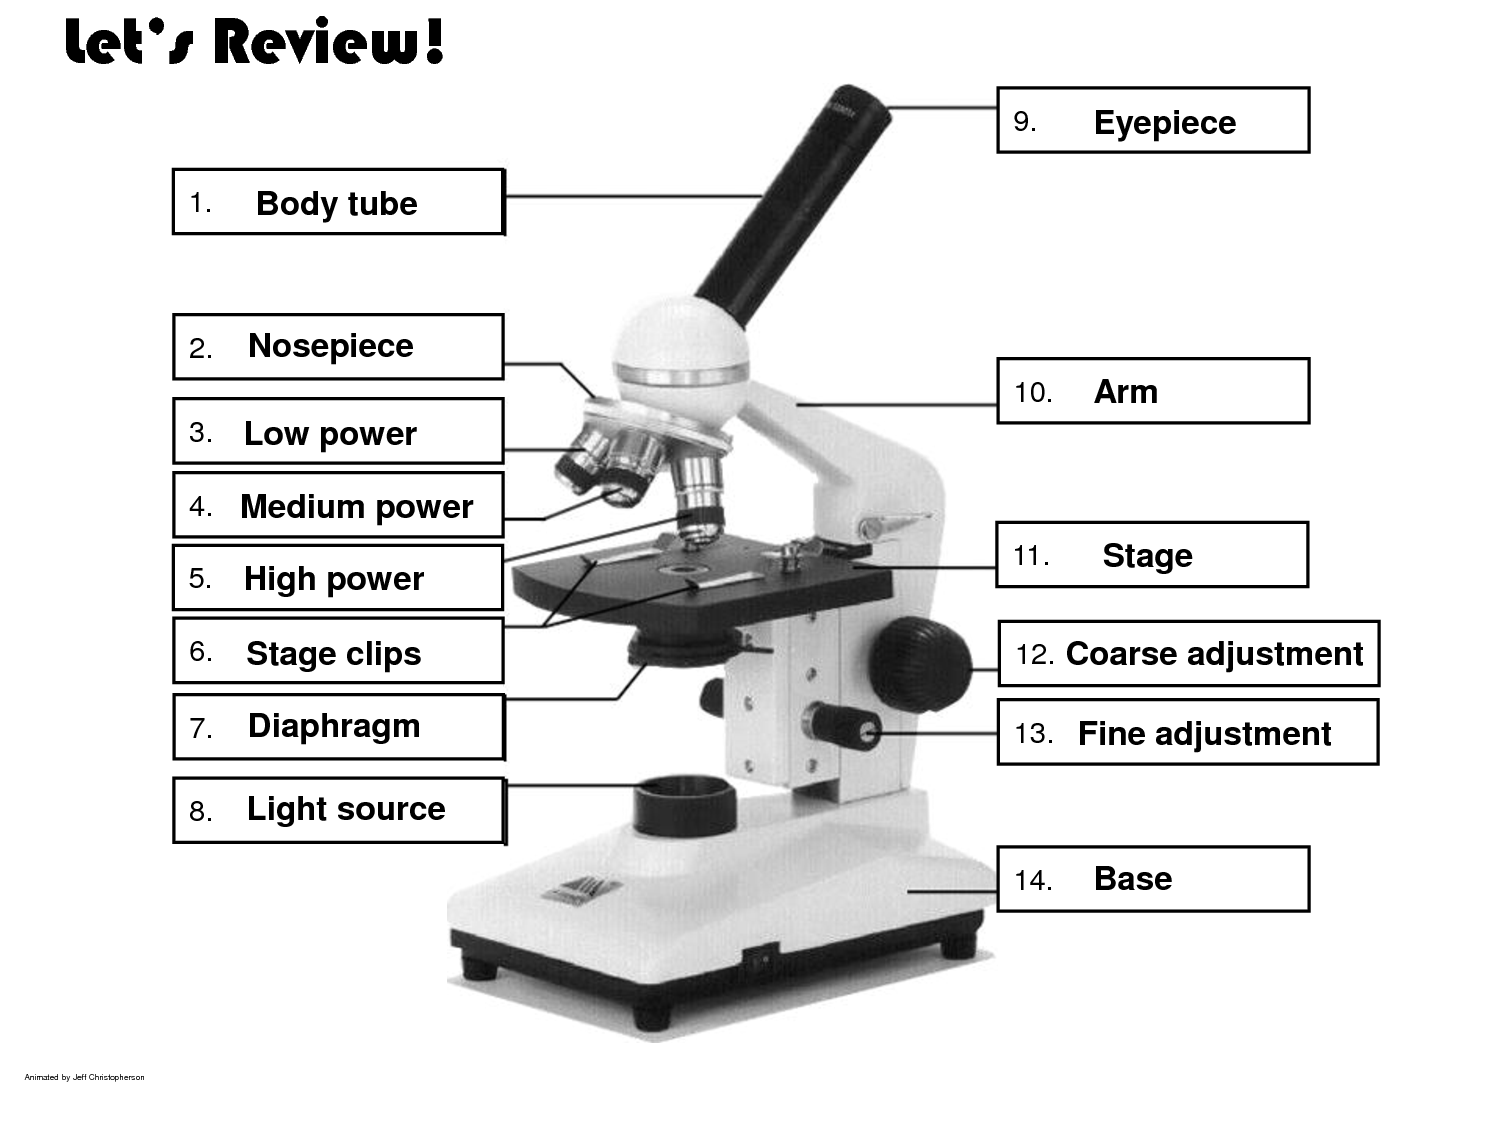 Worksheets The Compound Microscope Worksheet cells and microscope ms simpsons class site parts fill in image ans png